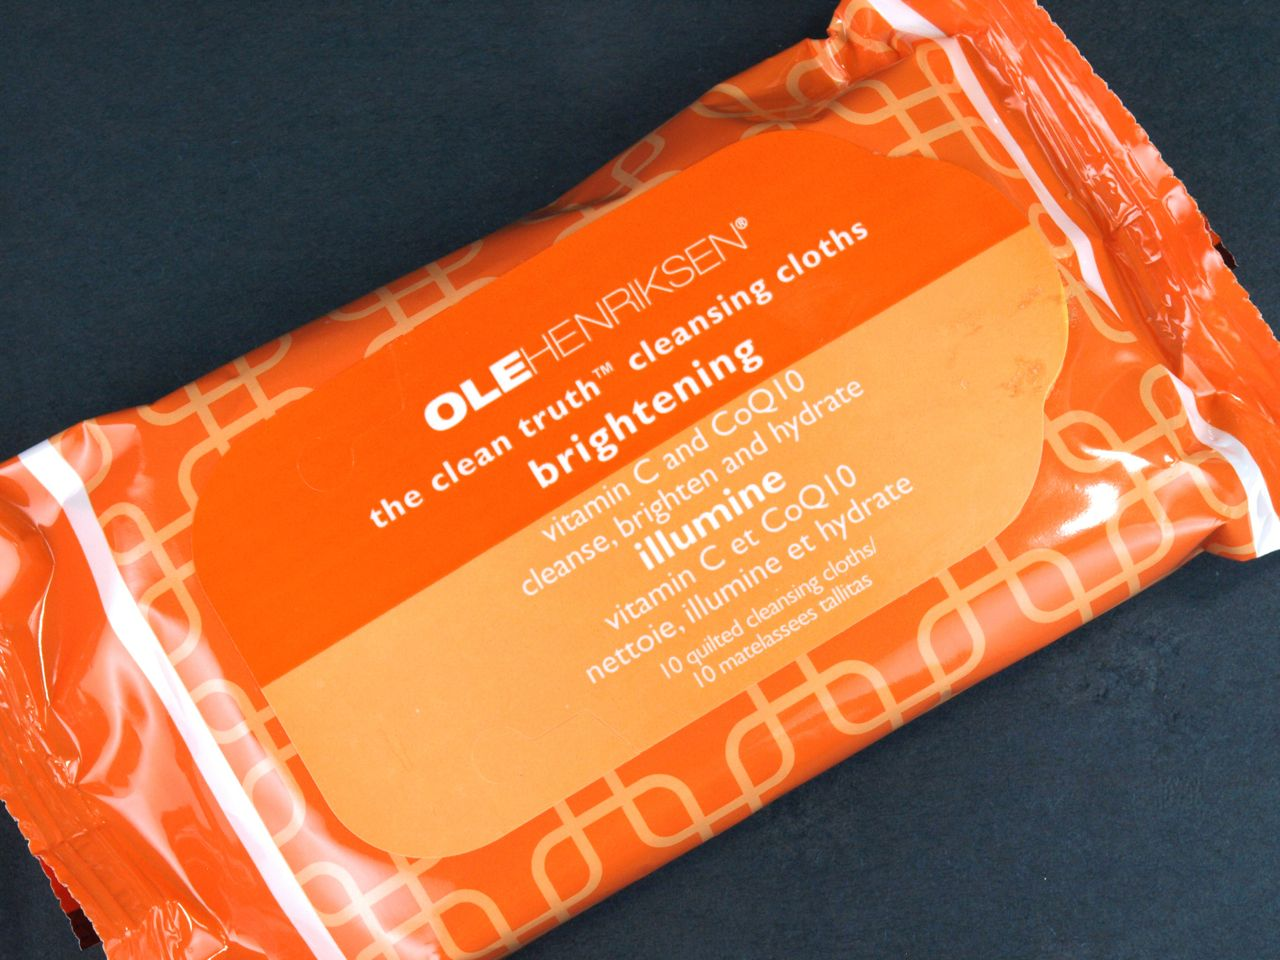 Ole Henriksen Unwrap Your Radiance Gift Set: Review